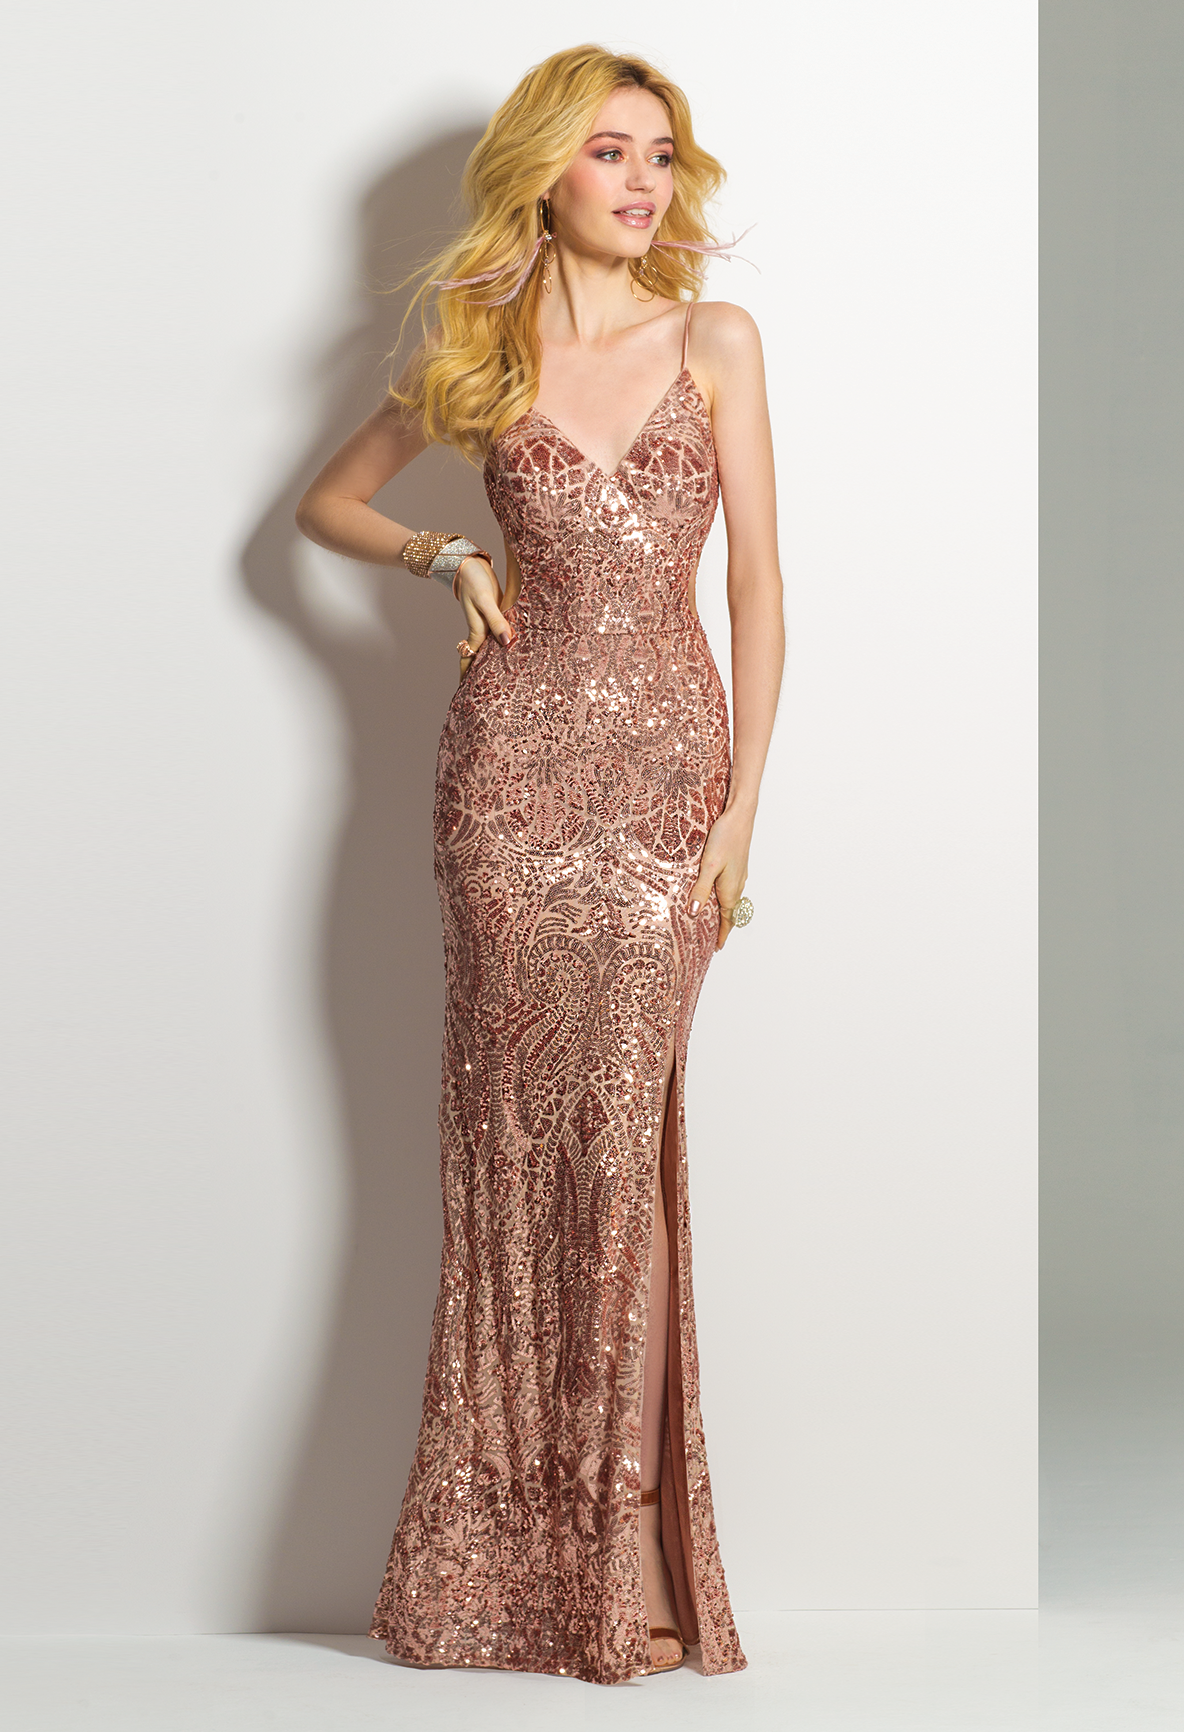 Look And Feel Like A Million Bucks In This Long Evening Gown A Flawless Prom Dress The Spaghetti Straps Fully Sequi Dresses Prom Dresses Wedding Guest Dress [ 1732 x 1184 Pixel ]